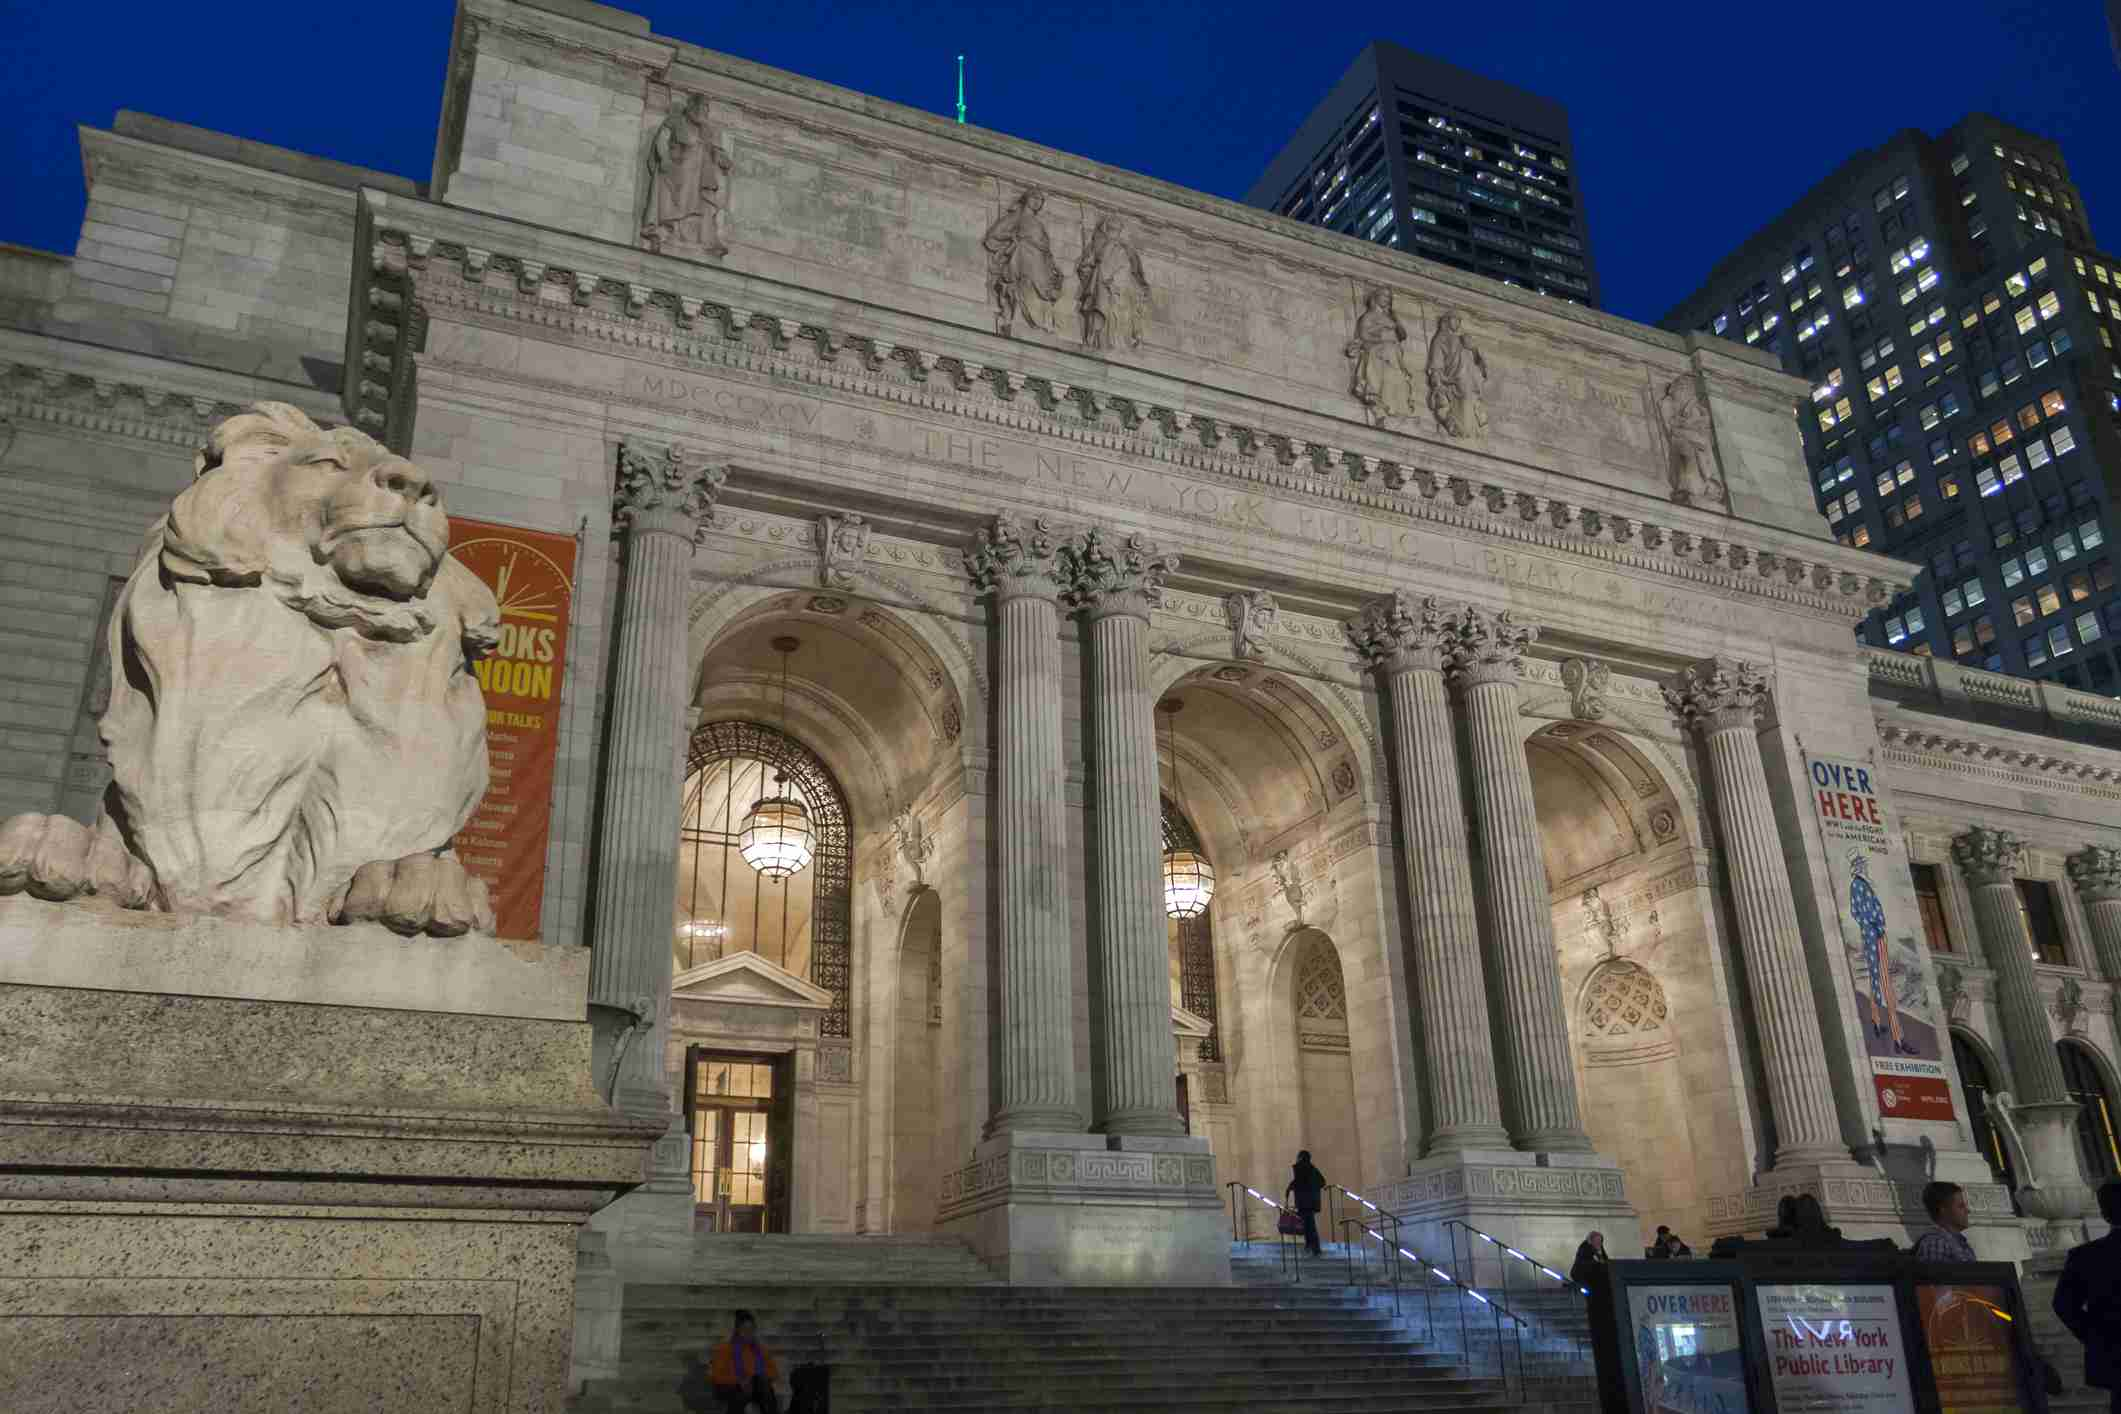 he exterior evening view of New York Public Library